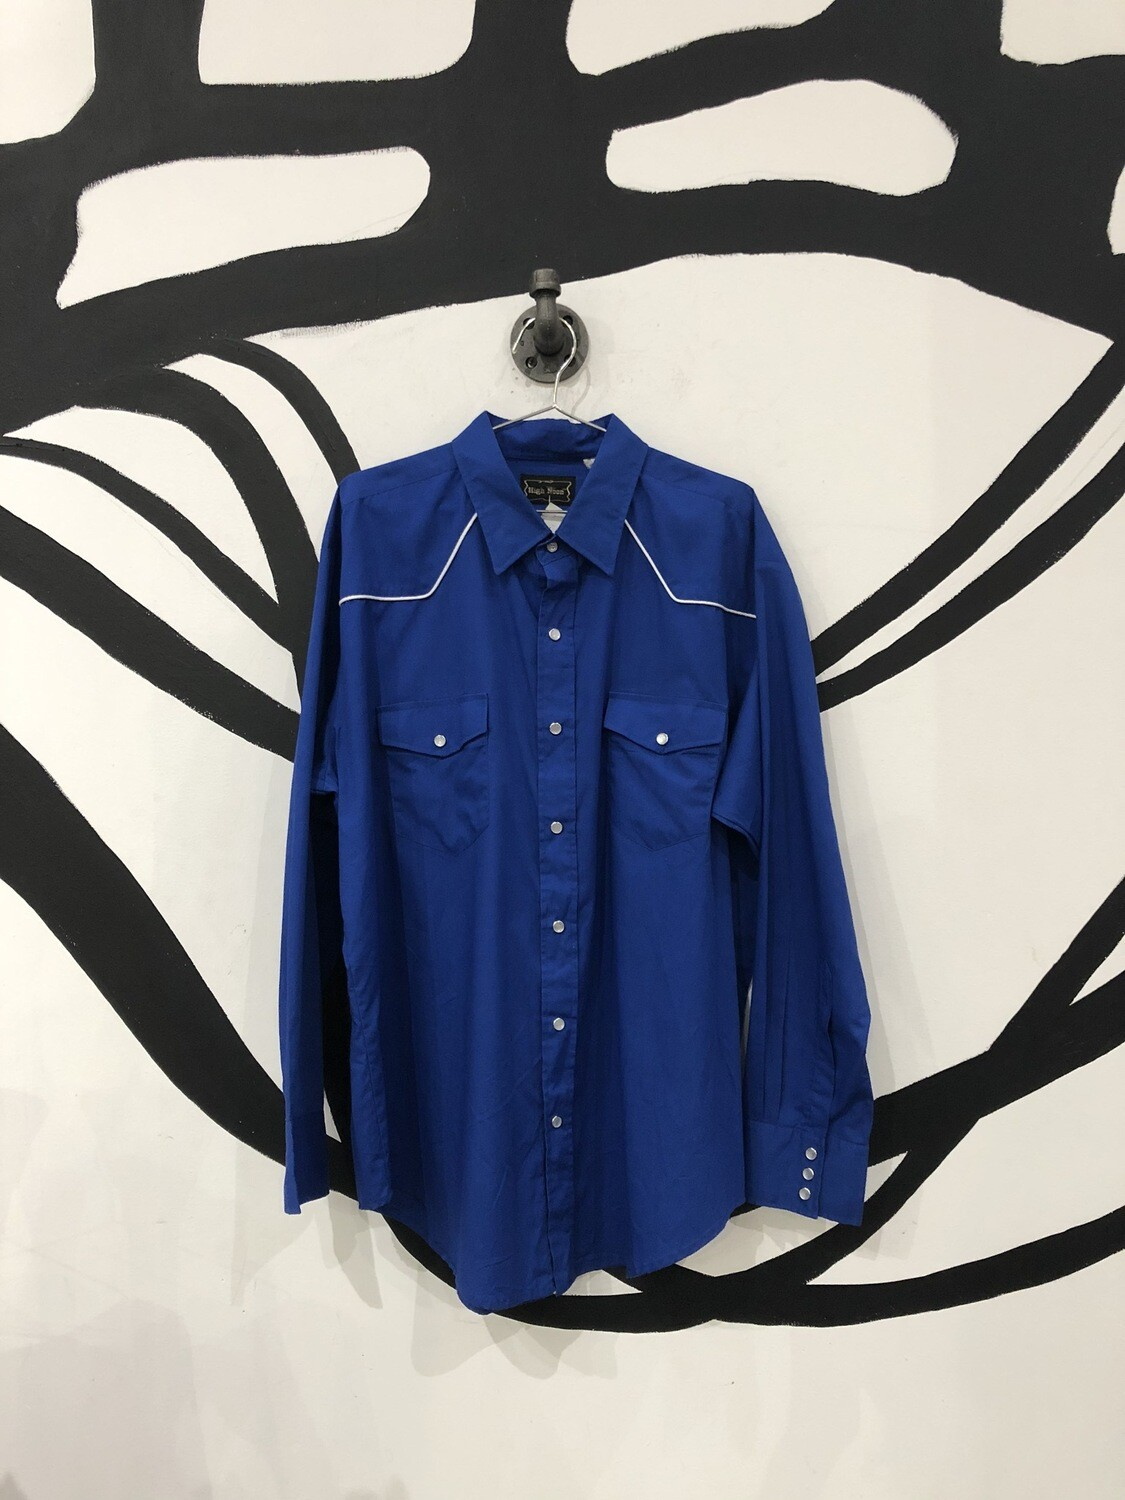 Royal Blue High Noon Western Pearl Snap Button Up Shirt Size L